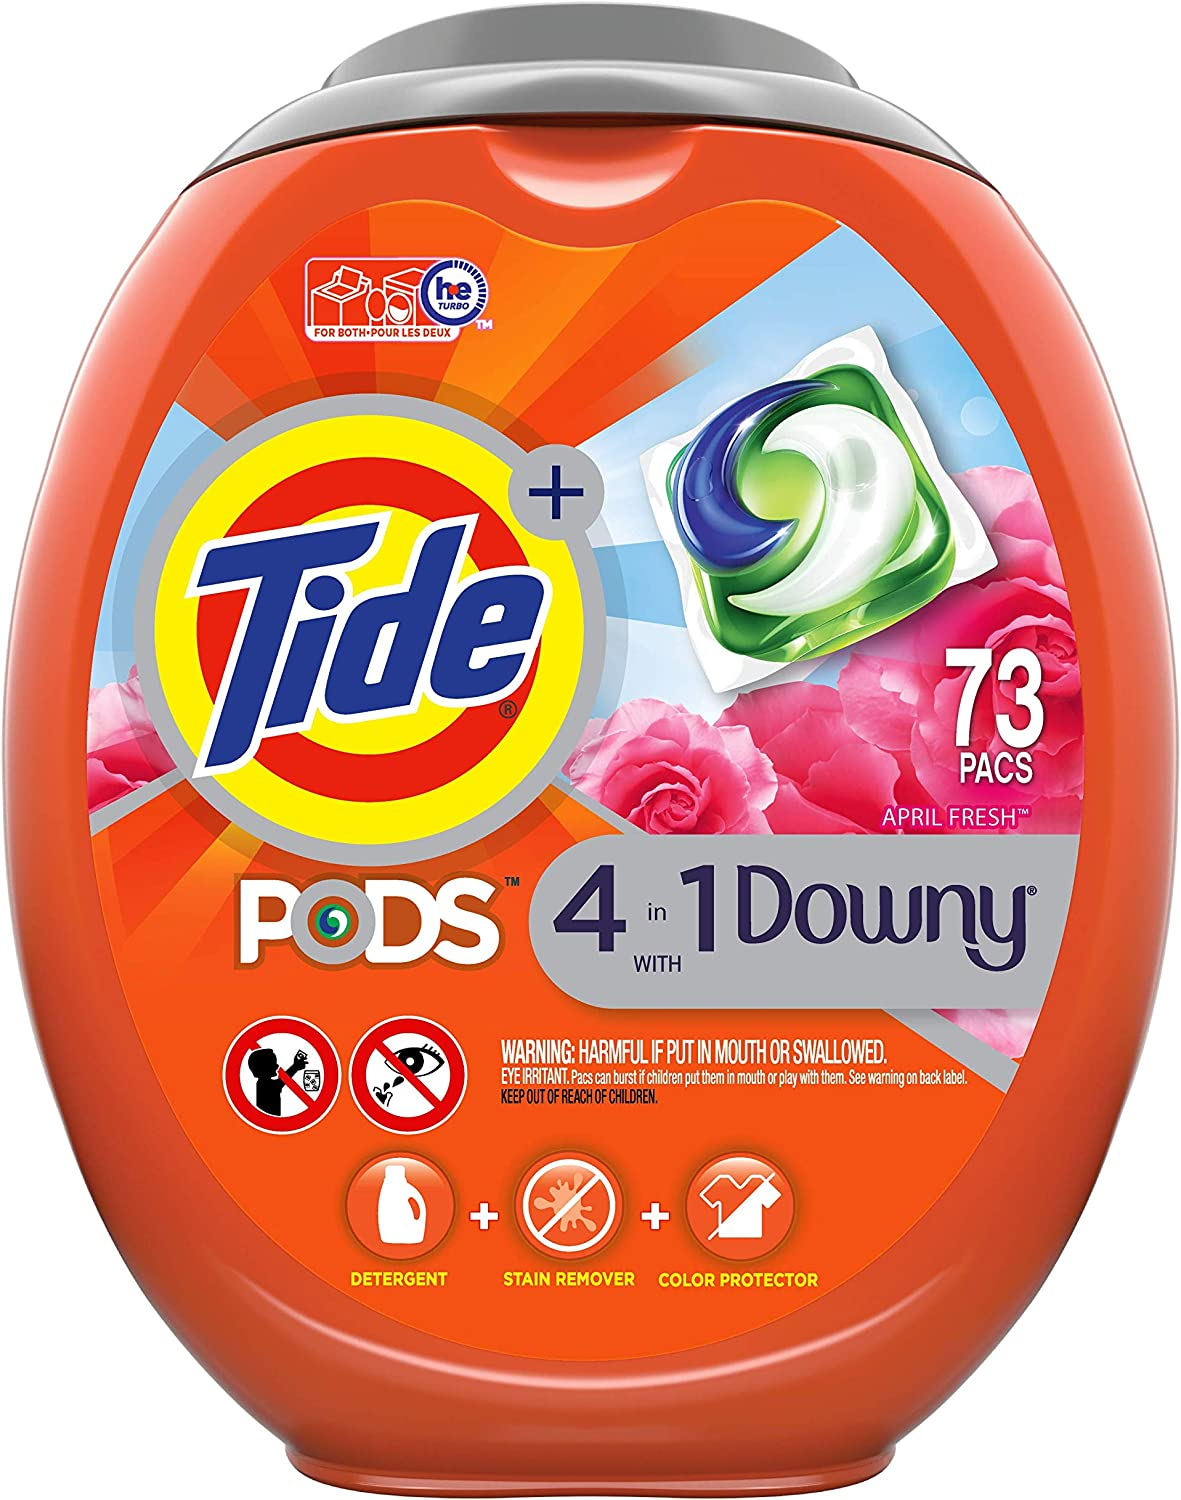 Tide PODS 4 in 1 with Downy, Laundry Detergent Soap PODS, April Fresh Scent, 73 Count : Health & Household